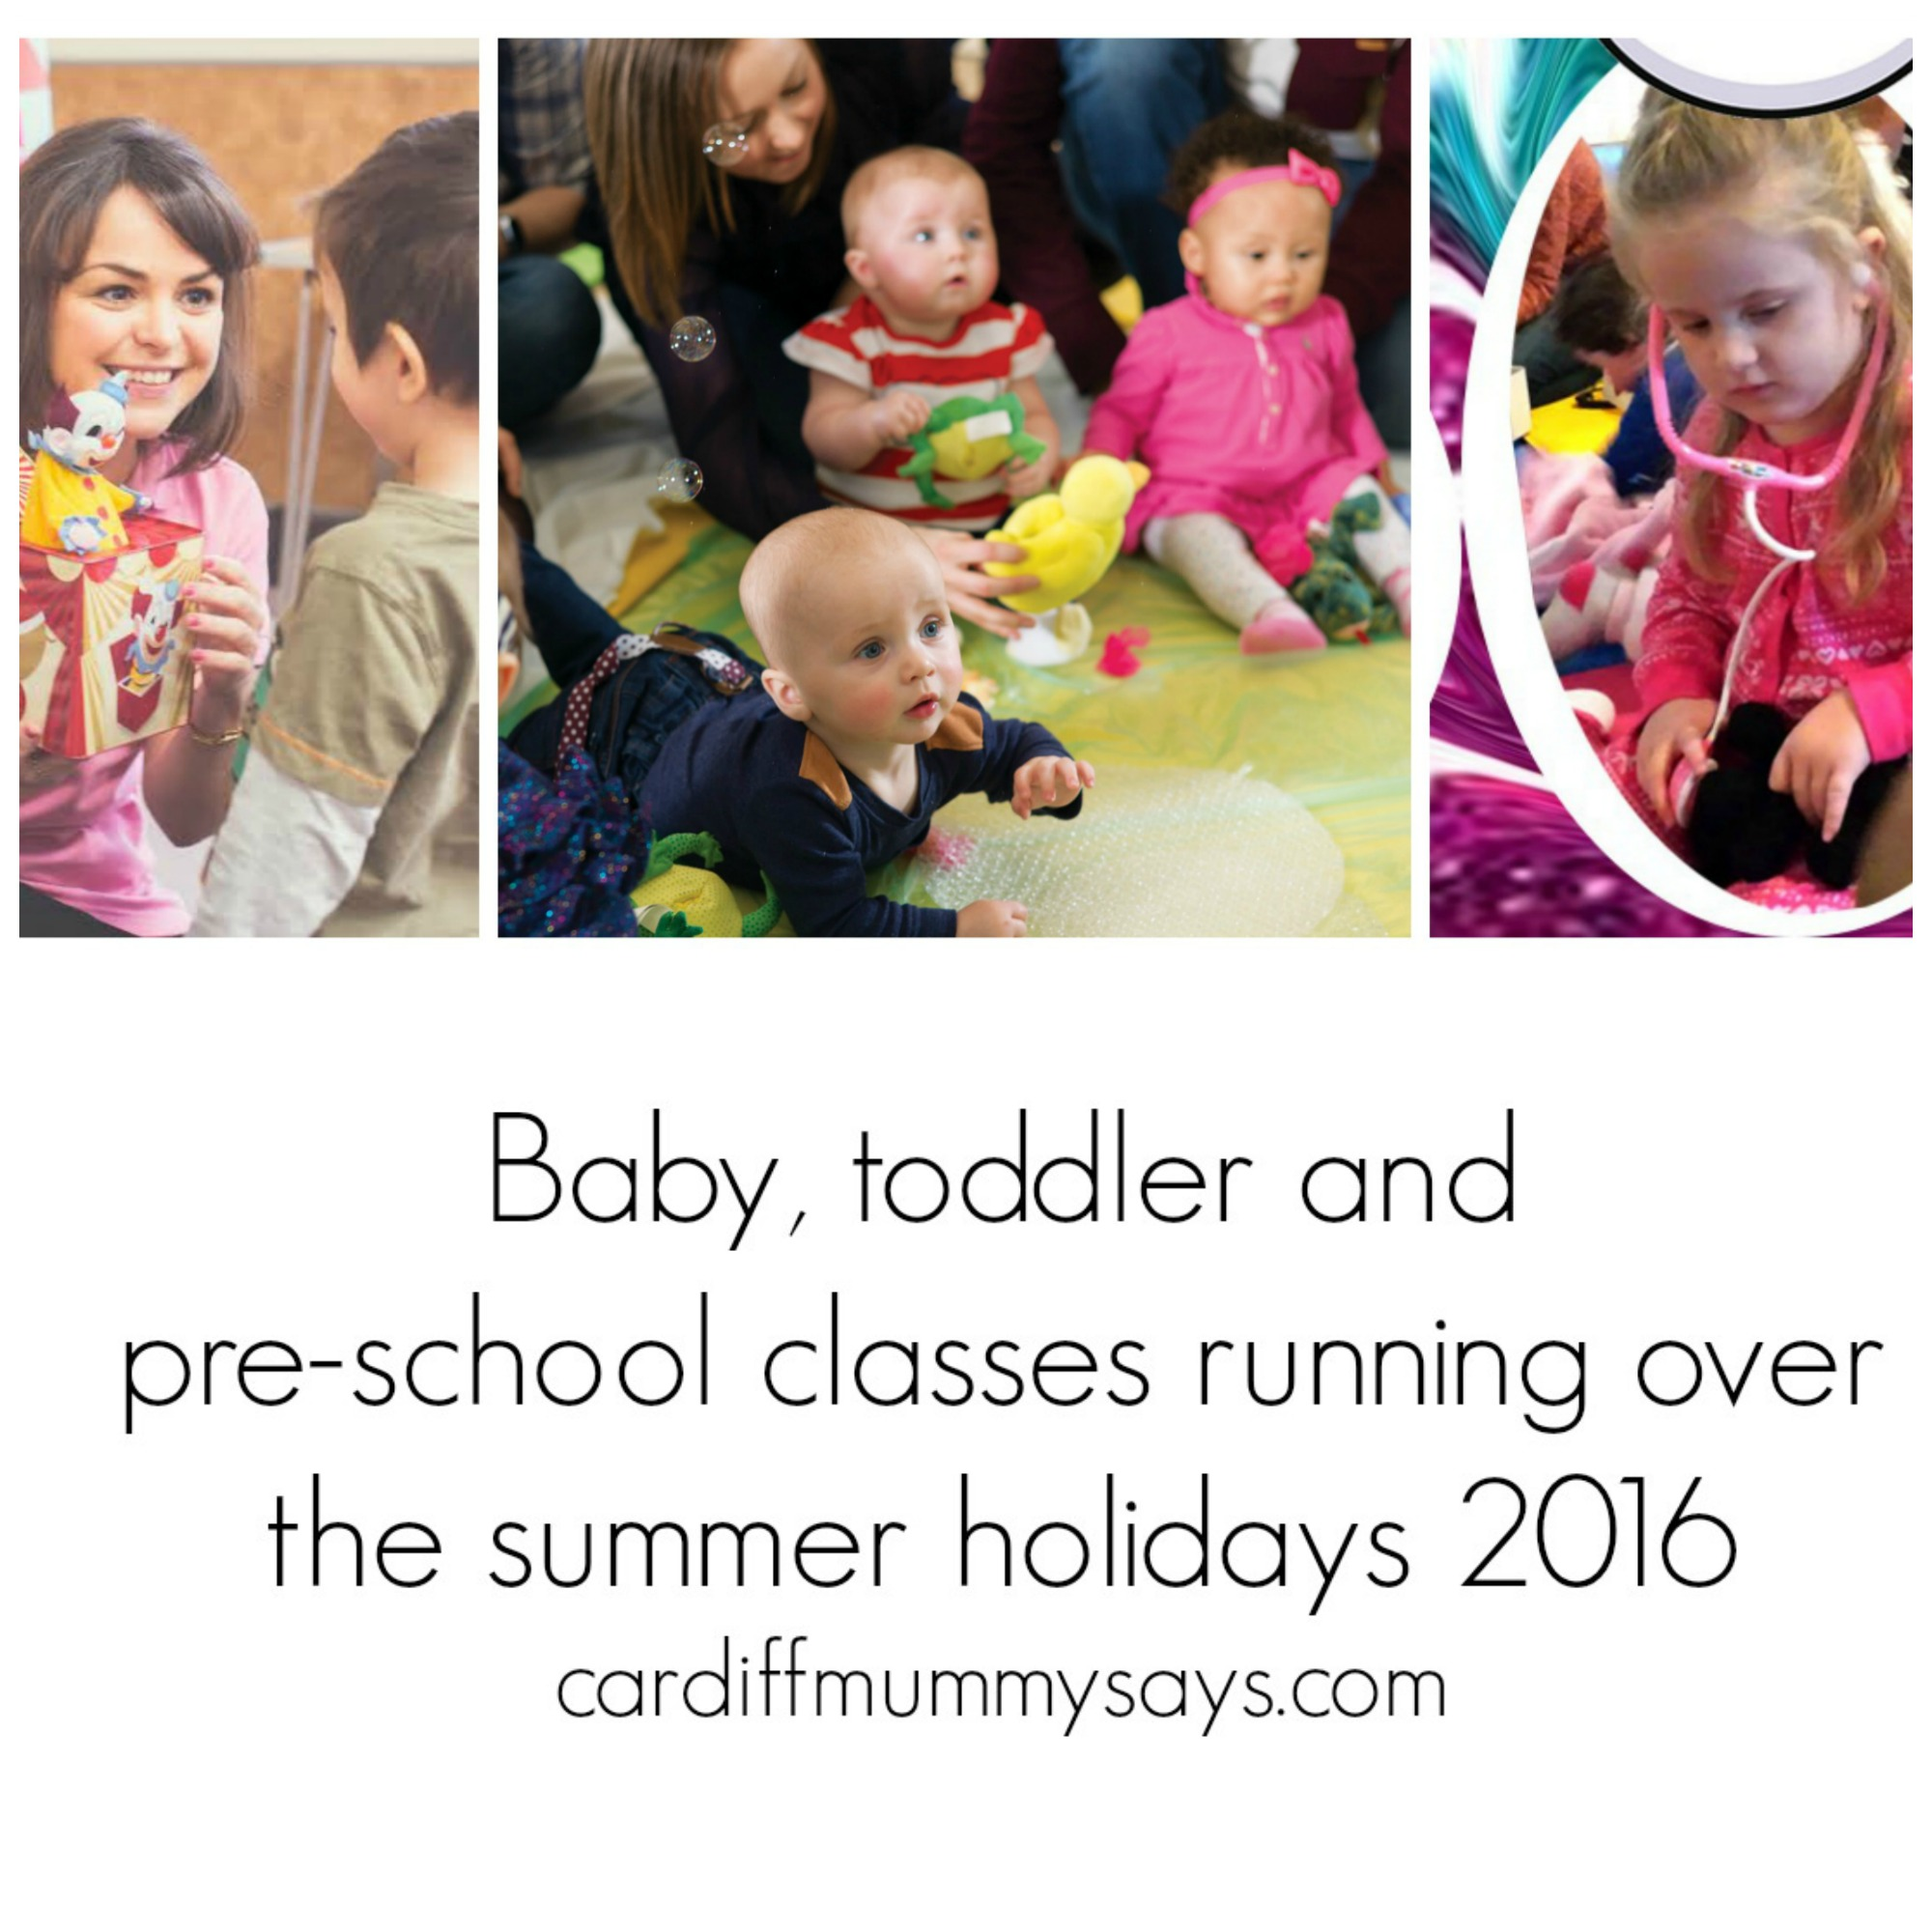 Preschool classes summer 2016 collage